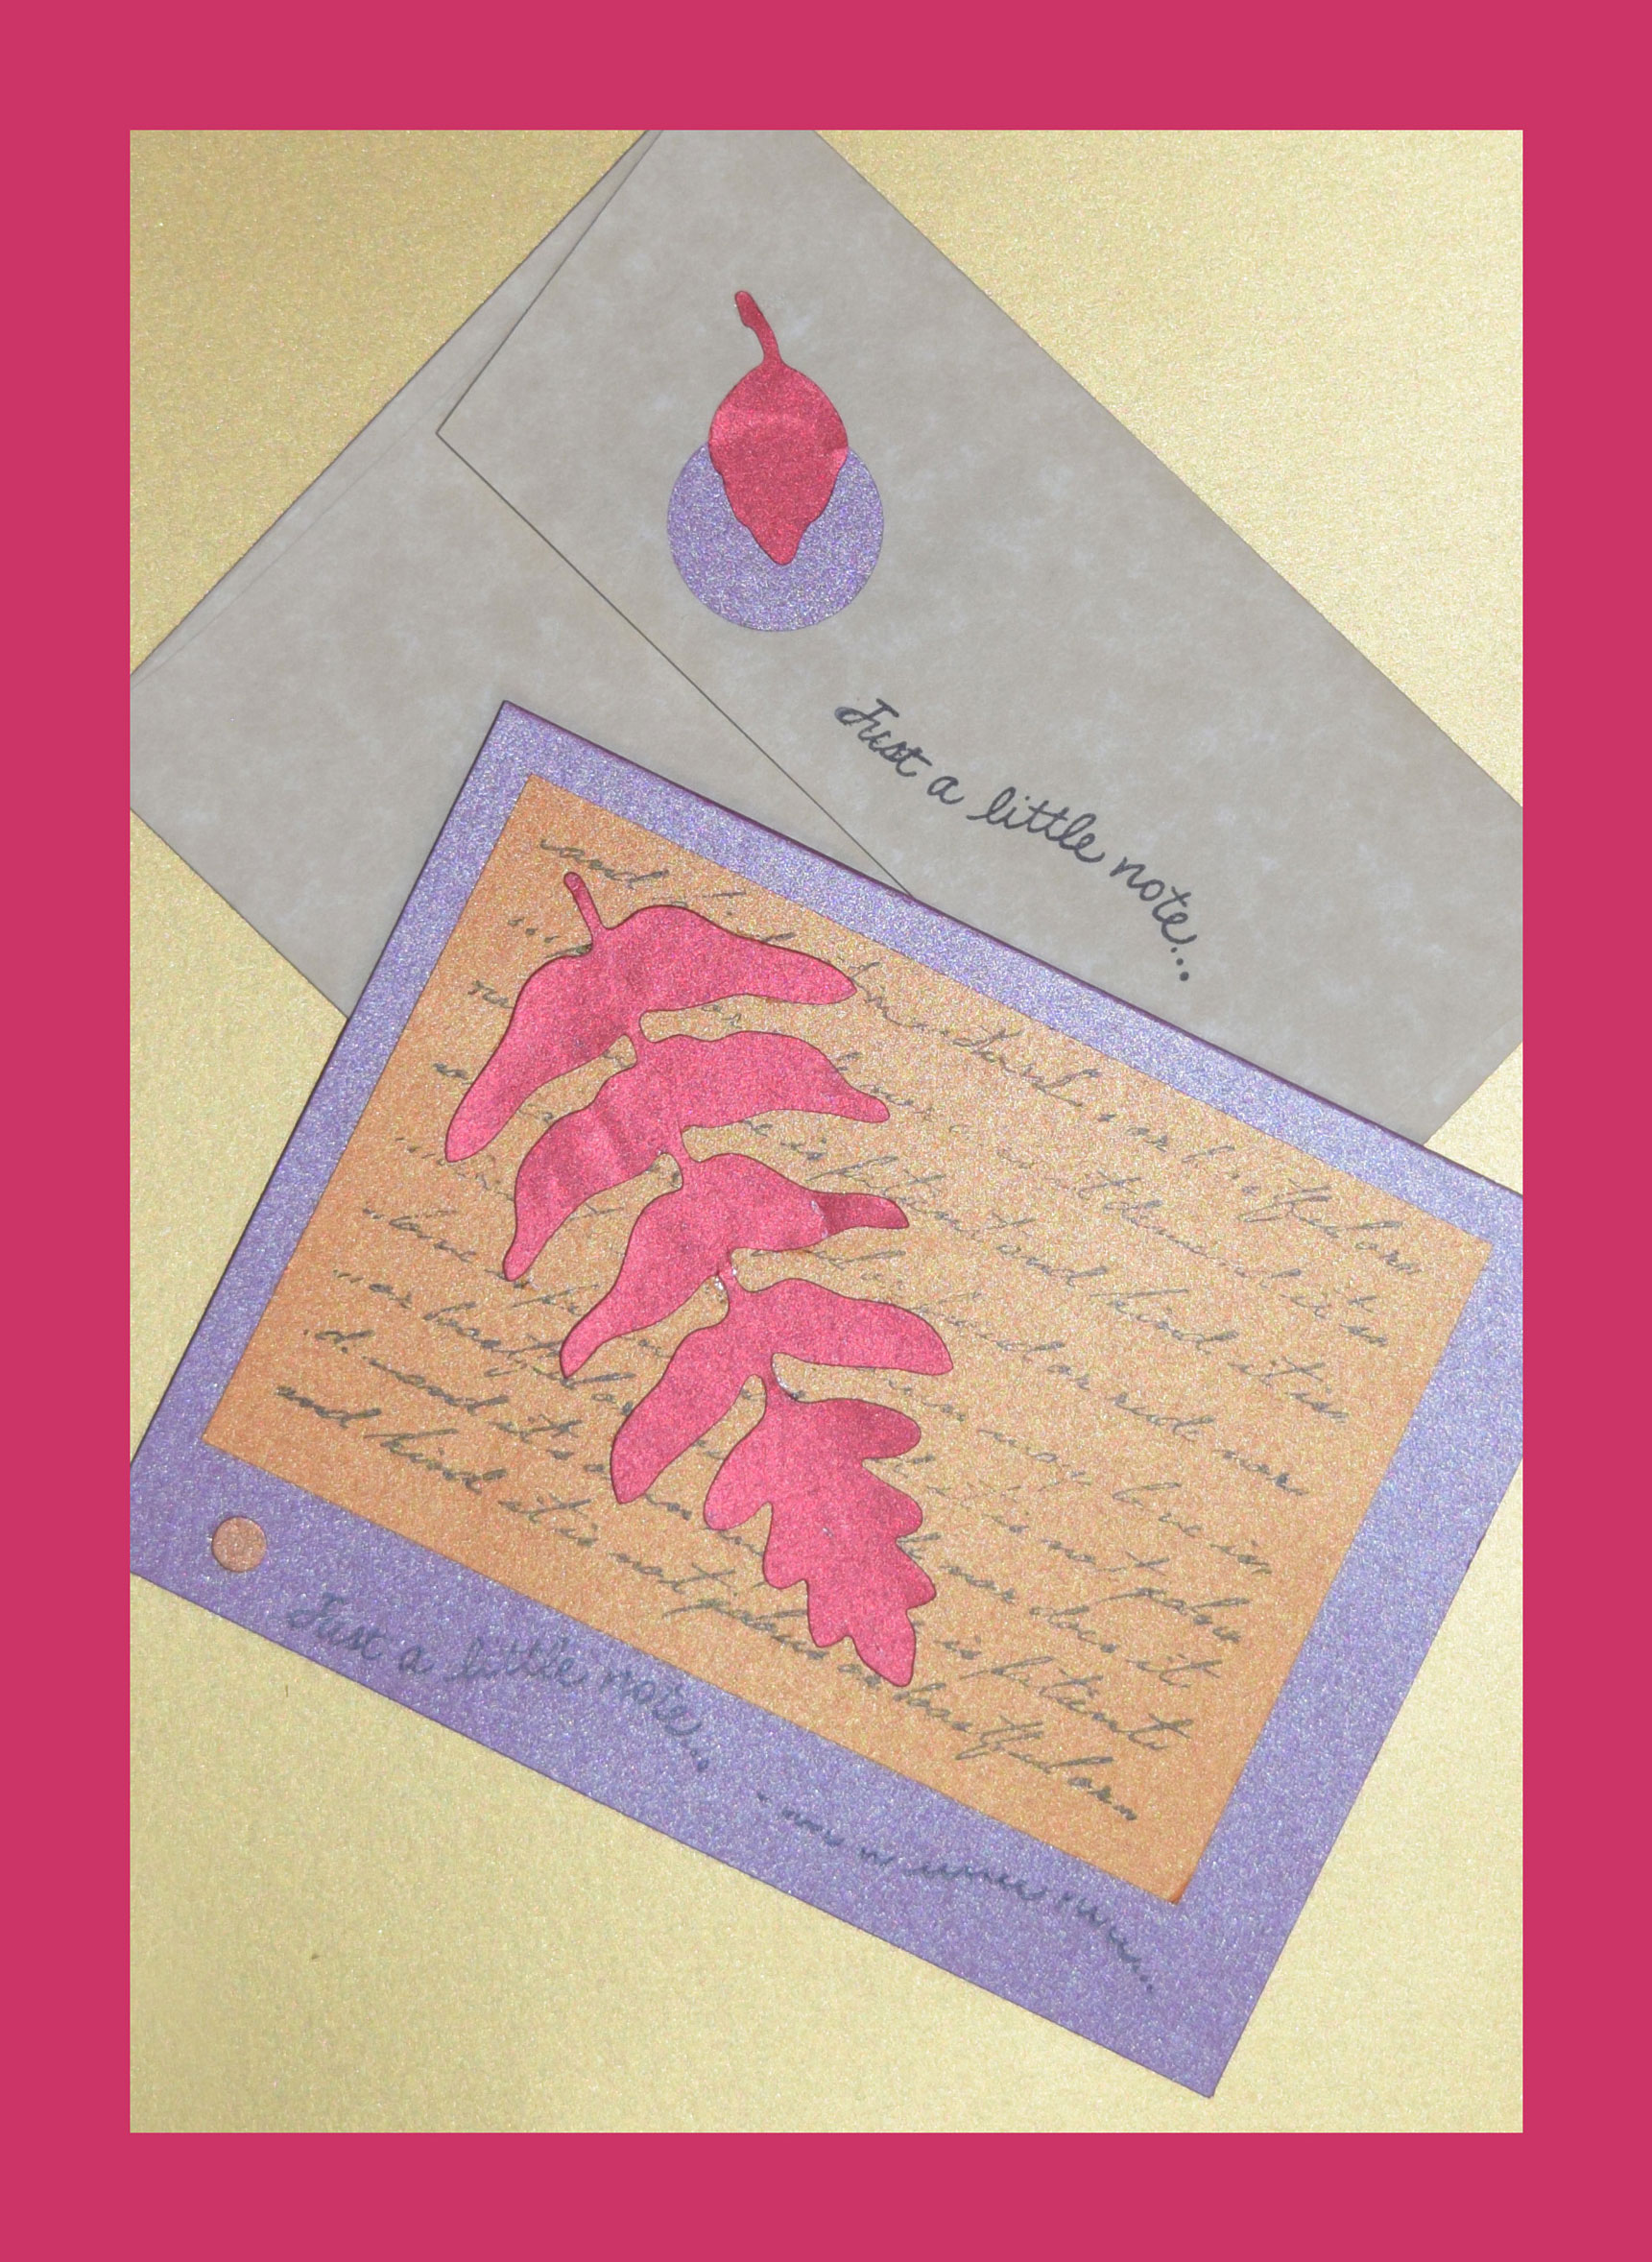 card making ideas - just a little note and invites - P Papers Just a note red leaf web - Card making ideas – Just a little note and Invites